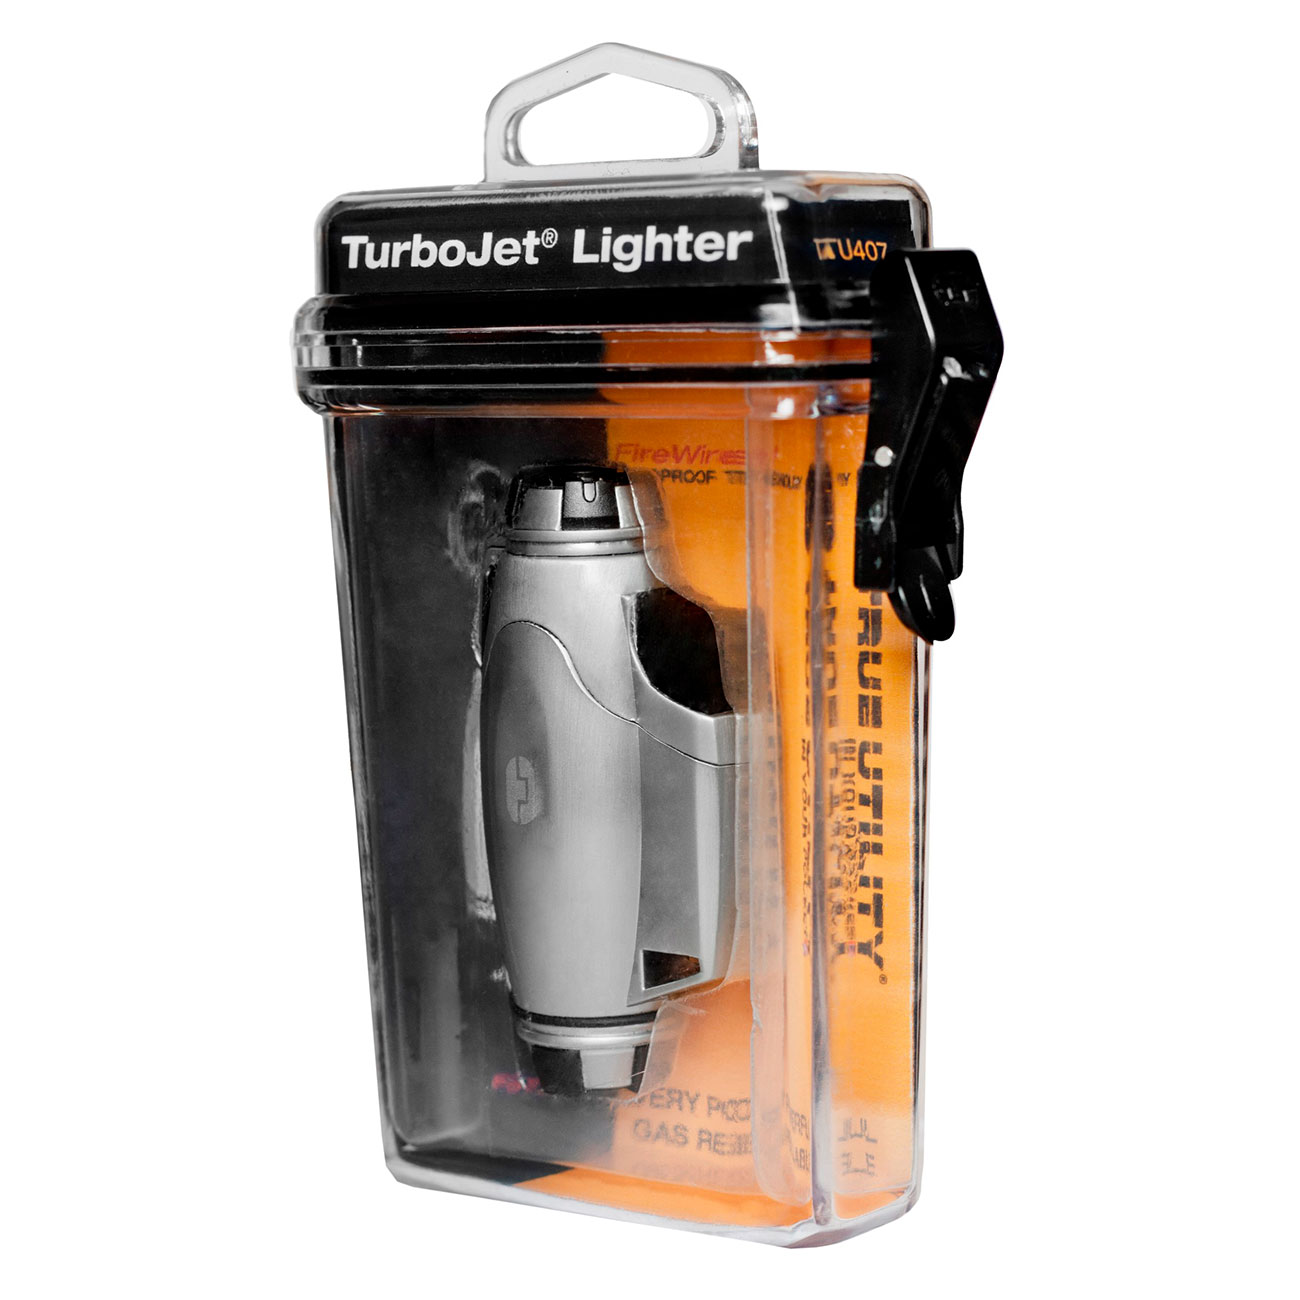 True Utility Sturmfeuerzeug TU407 TurboJet Lighter silber 3